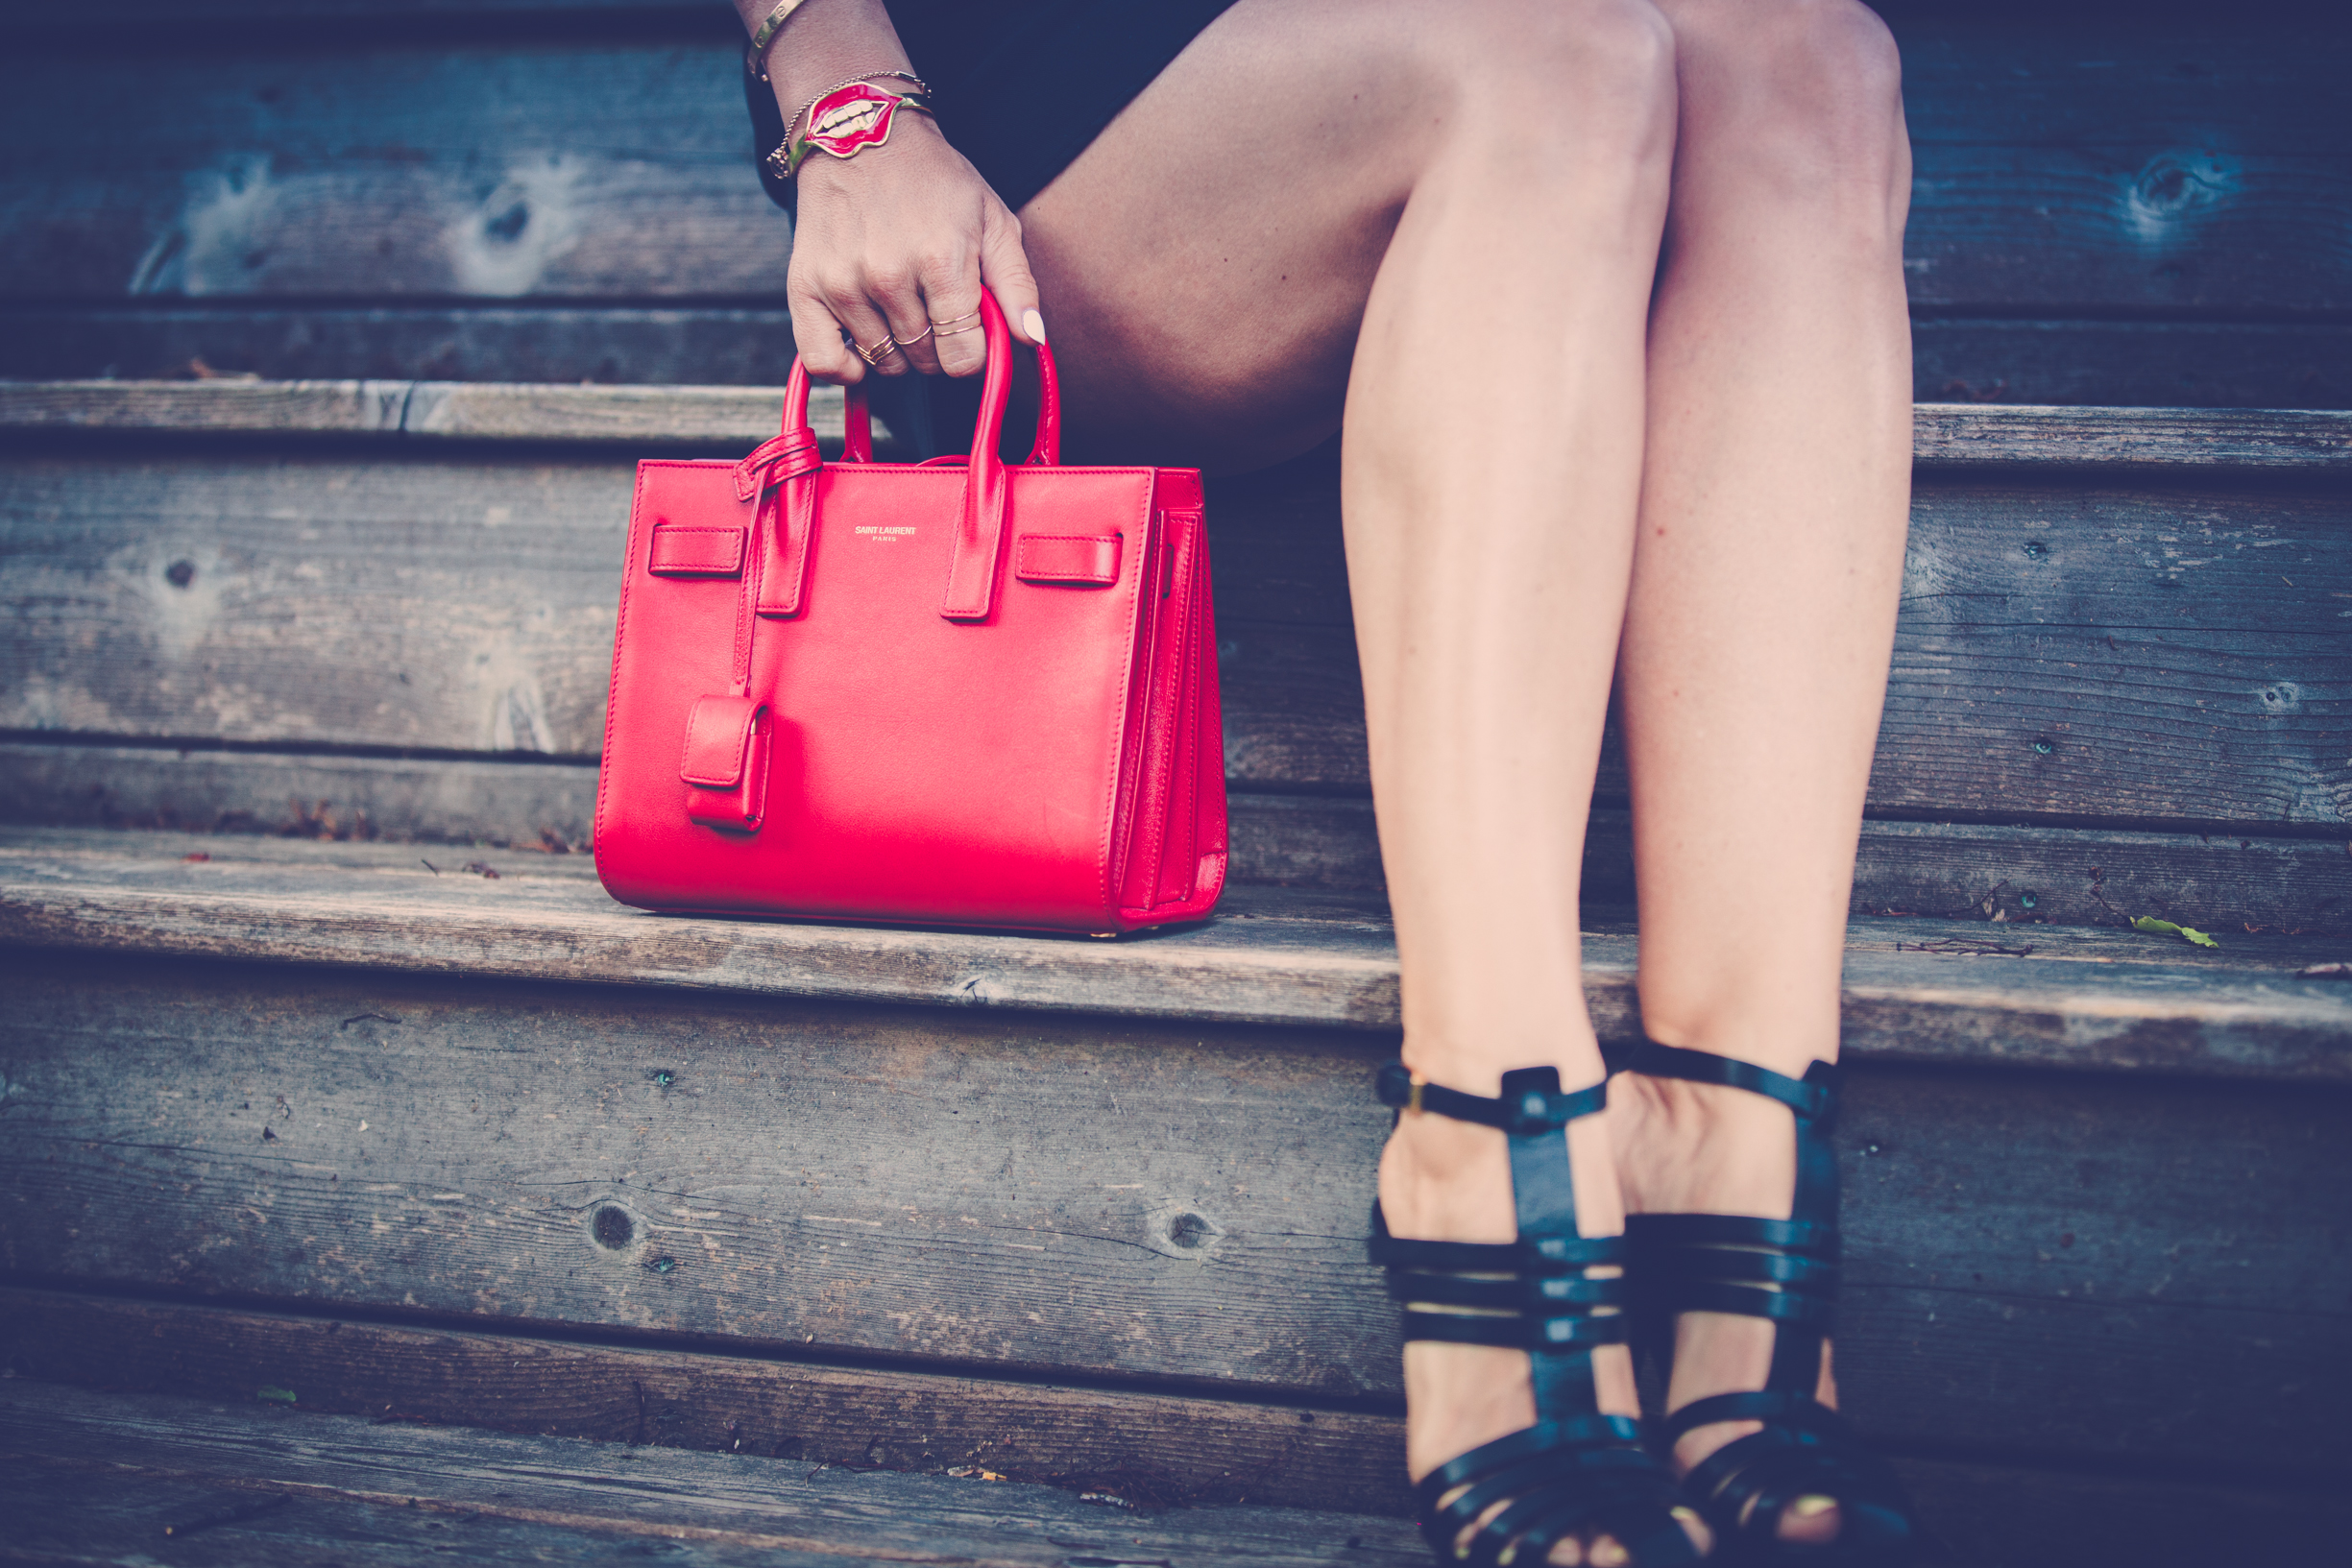 mademoiselle jules mlle saint laurent shoes bag red purse caia jewels new social class